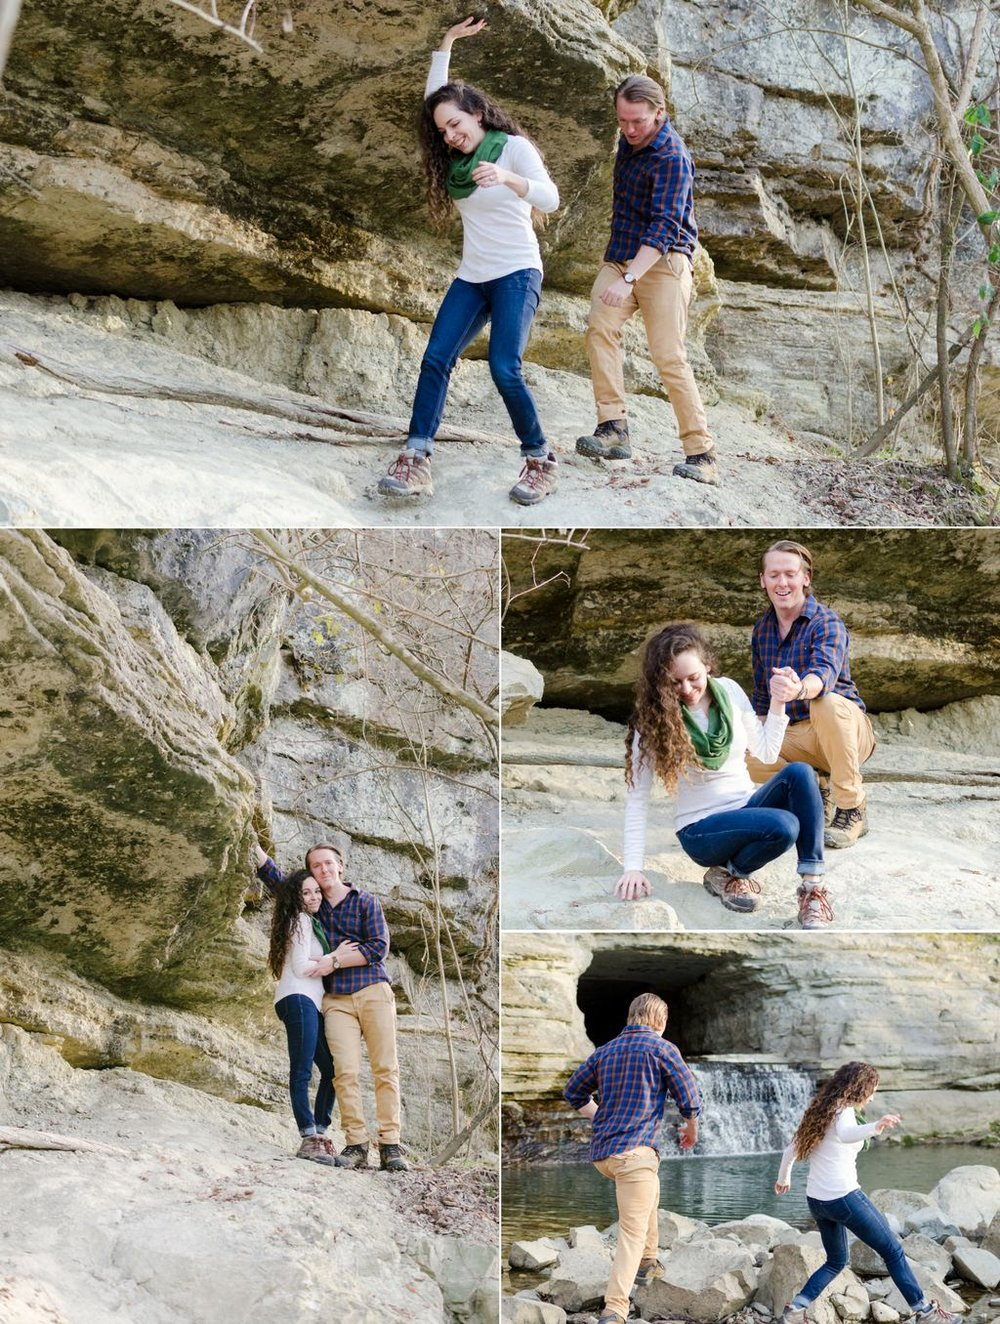 Tom-Hannah-Narrows-of-the-harpeth-adventurous-winter-Engagement-Session-Nashville-Wedding-Photographers+9